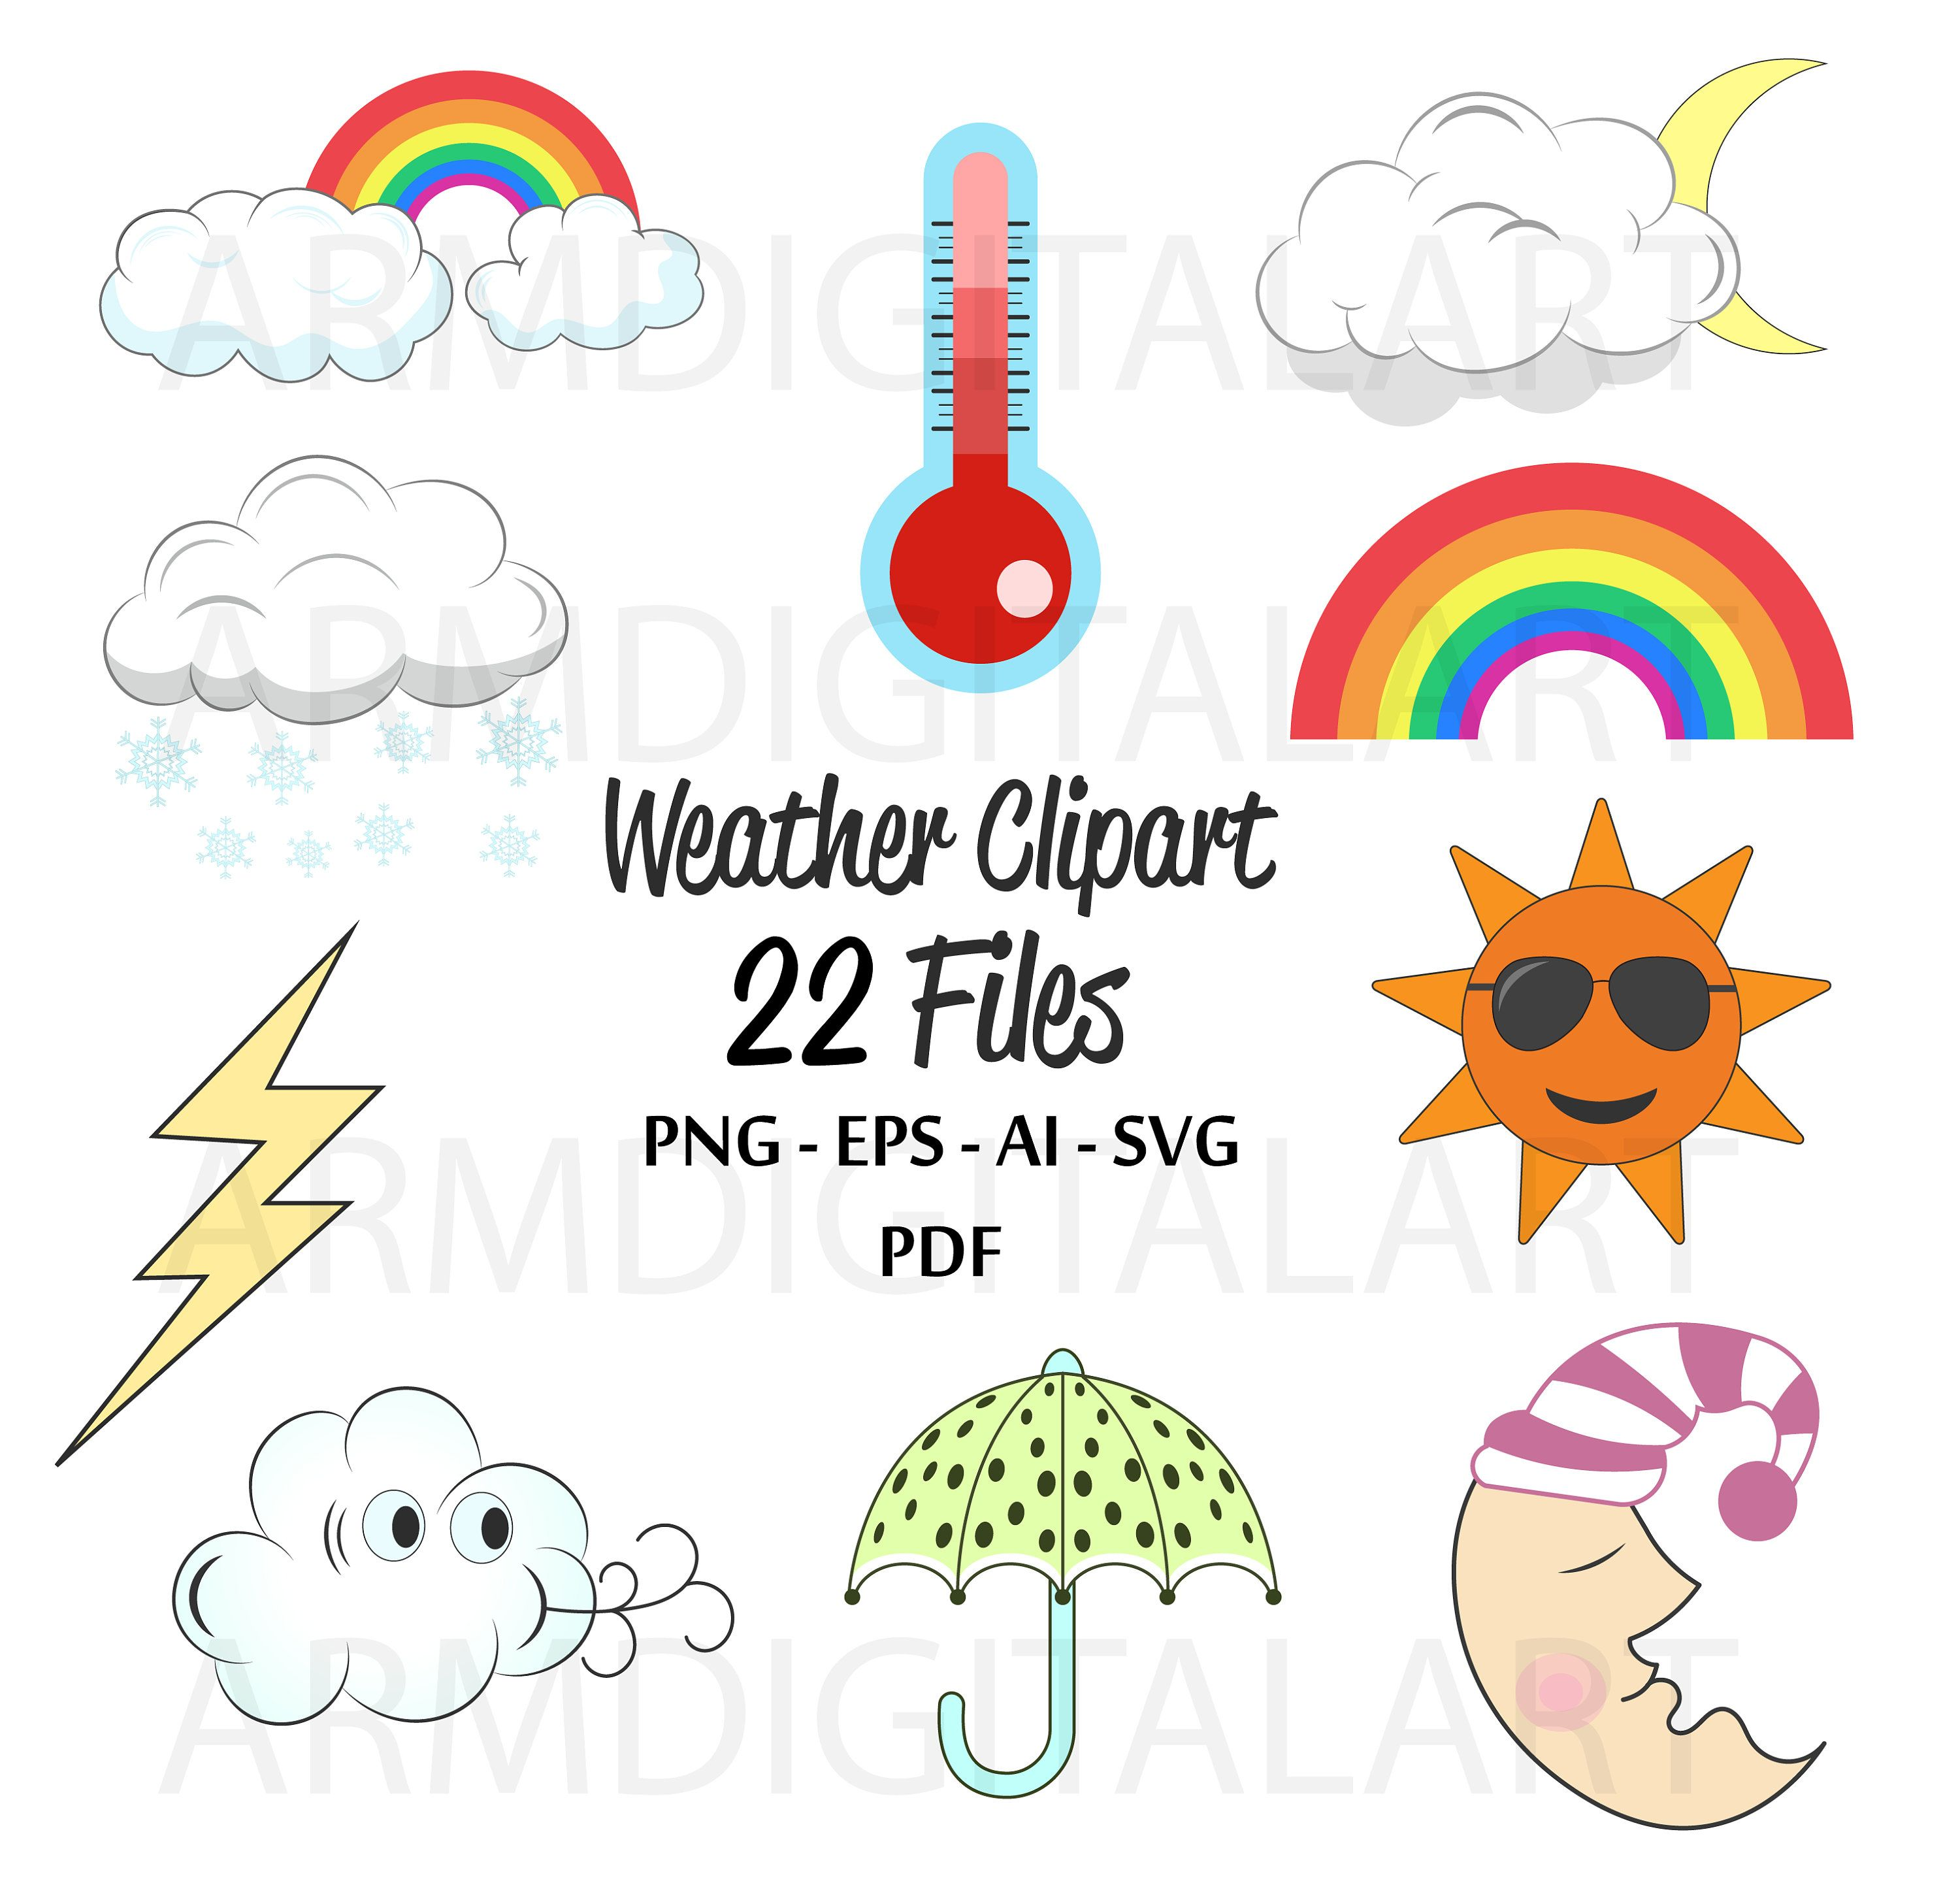 weather clipart weather graphics commercial use forecast clipart planner accessories weather icons cloud clipart sun vector files by armdigitalart  [ 3000 x 2882 Pixel ]